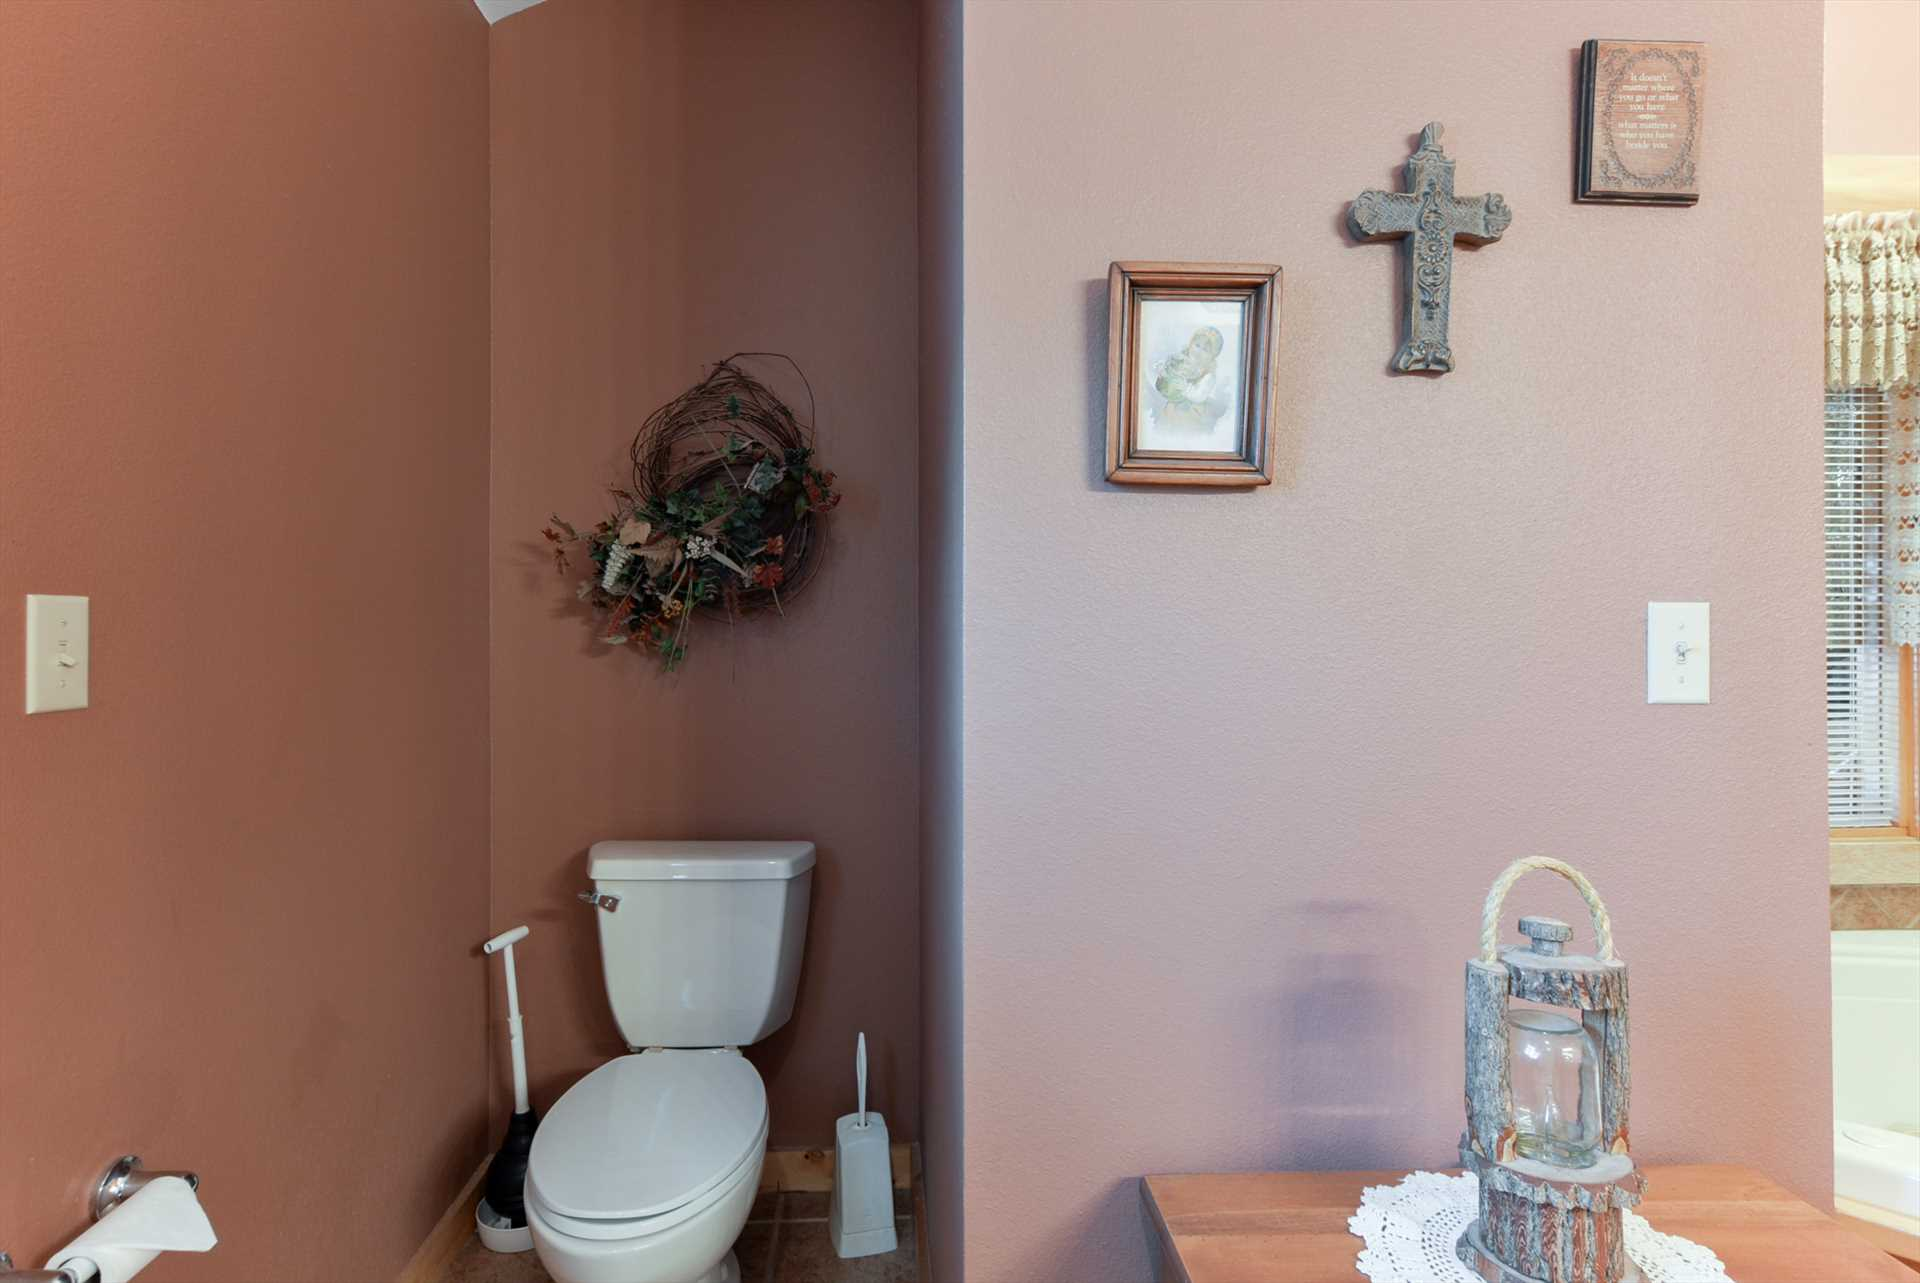 The rustic decor continues into the bathroom.